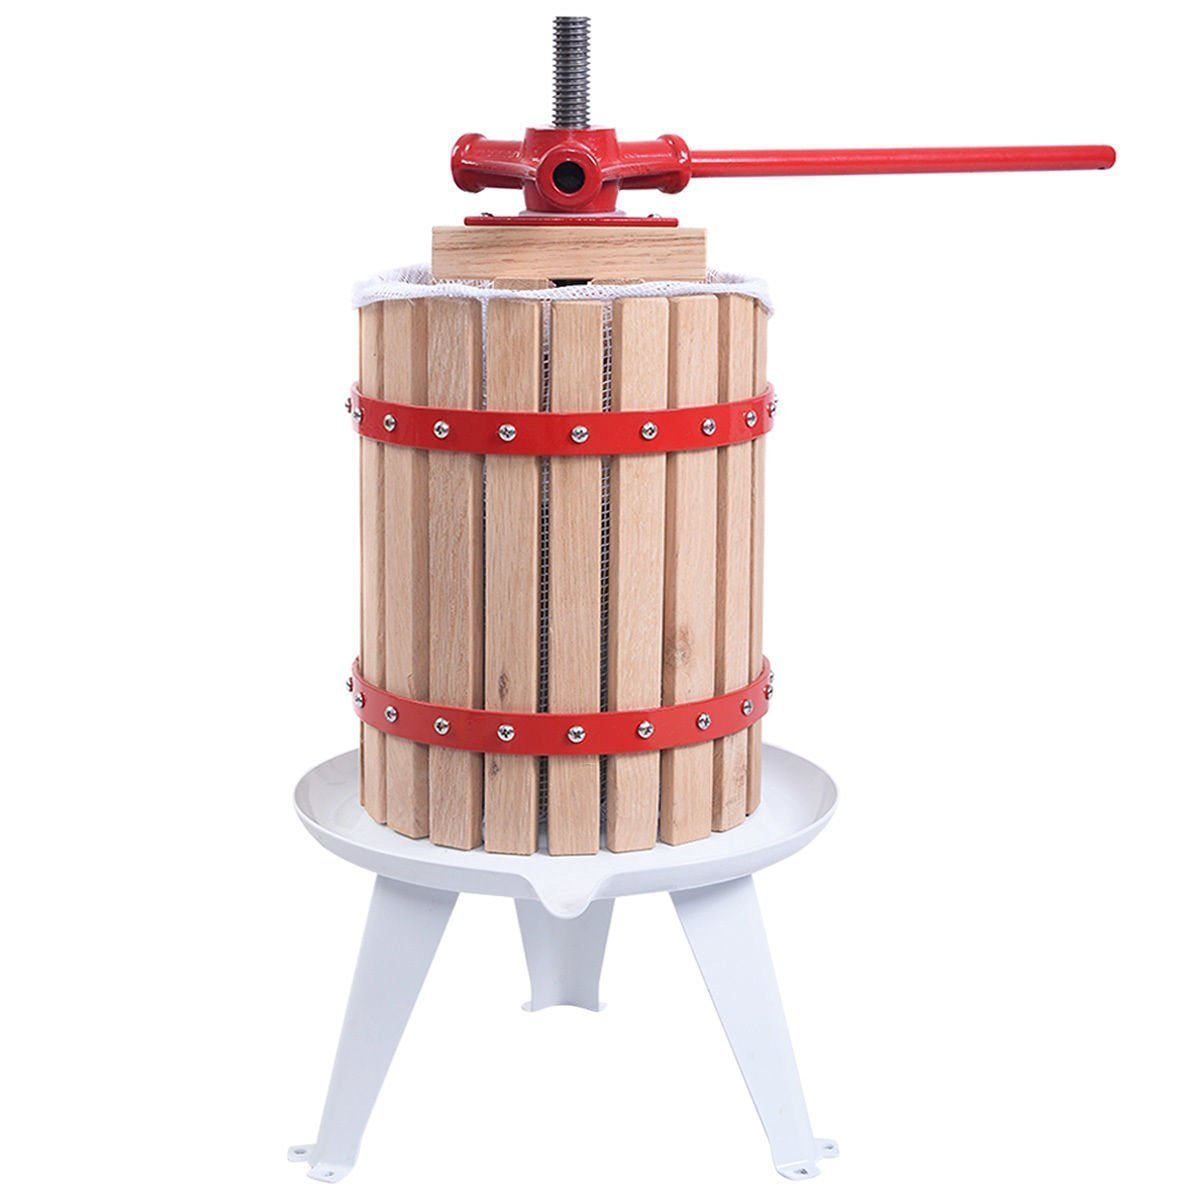 AdirChef Fruit and Wine Press - 1.6 Gallon (6 Liter)